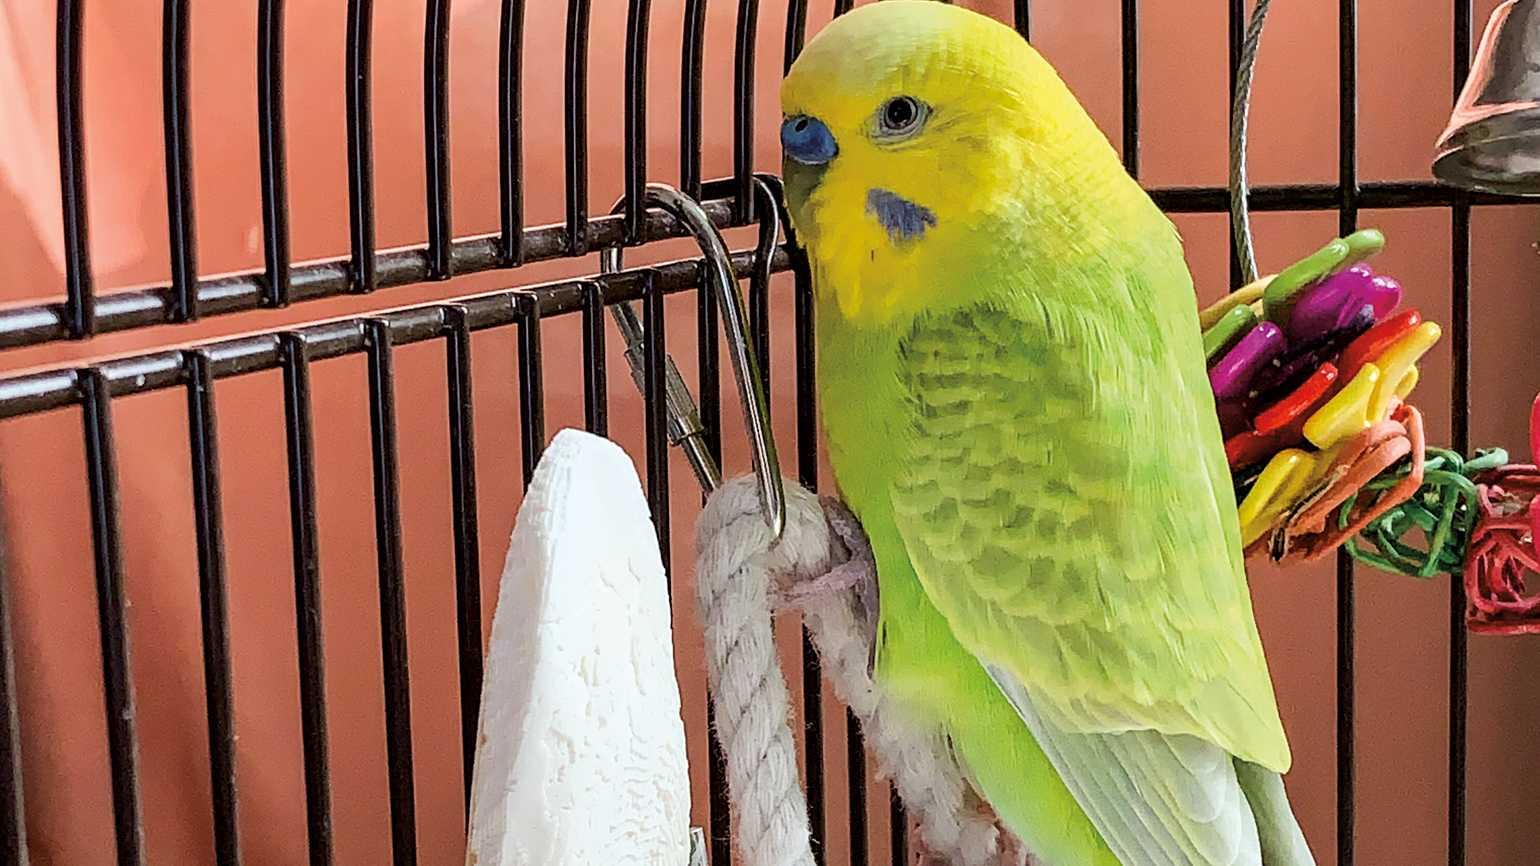 A small, green parakeet in a bird cage.